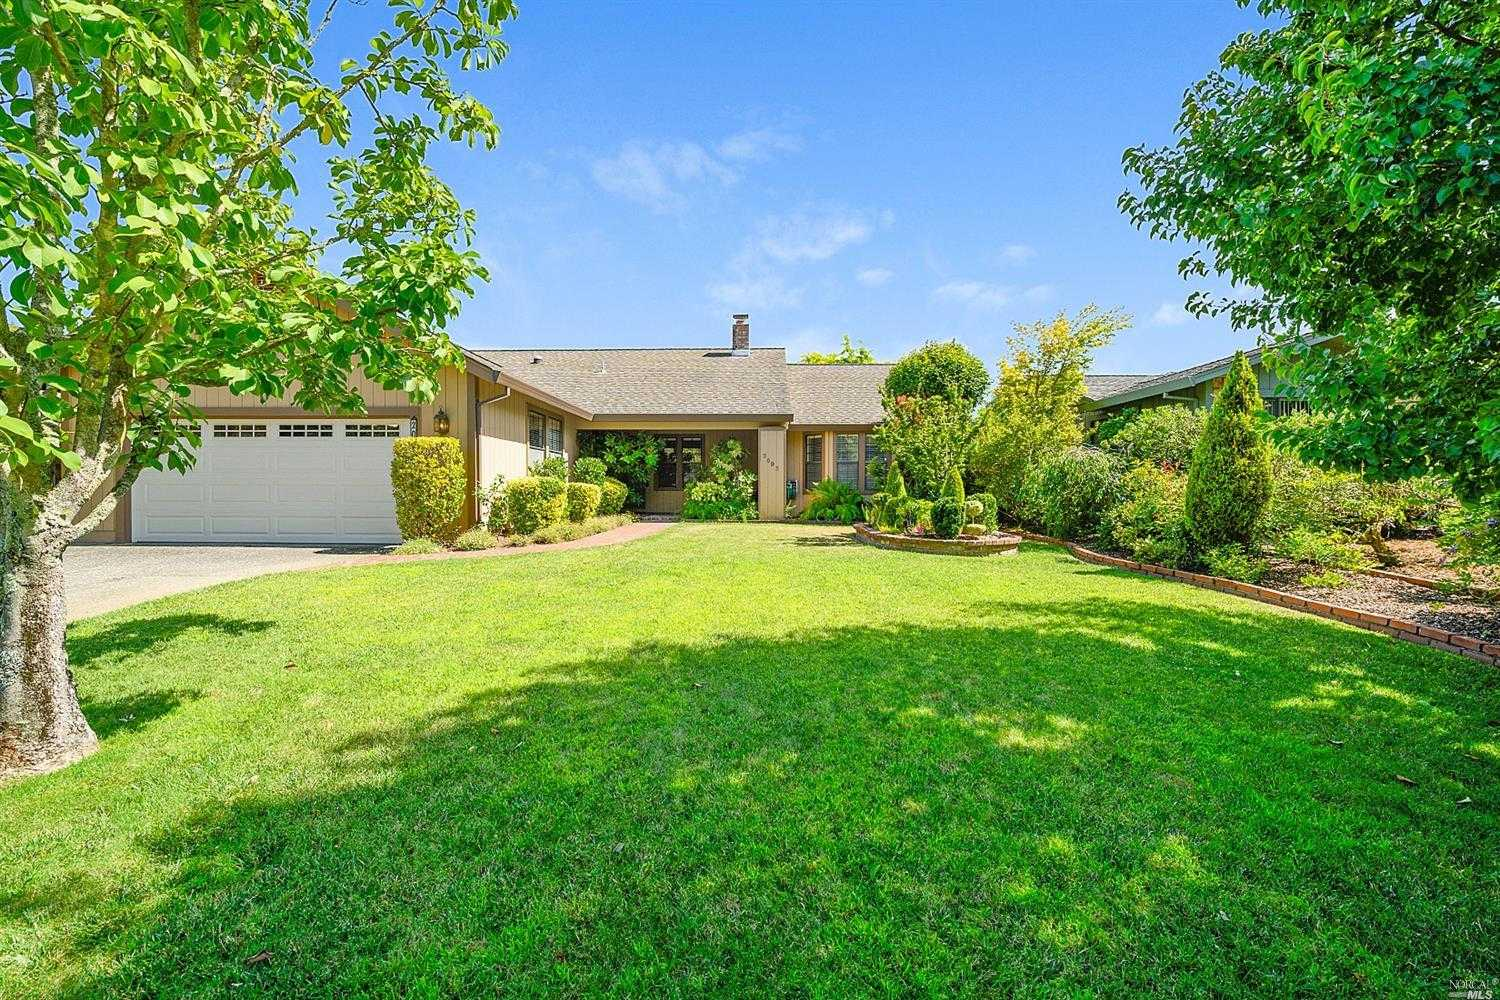 $825,000 - 3Br/2Ba -  for Sale in Napa